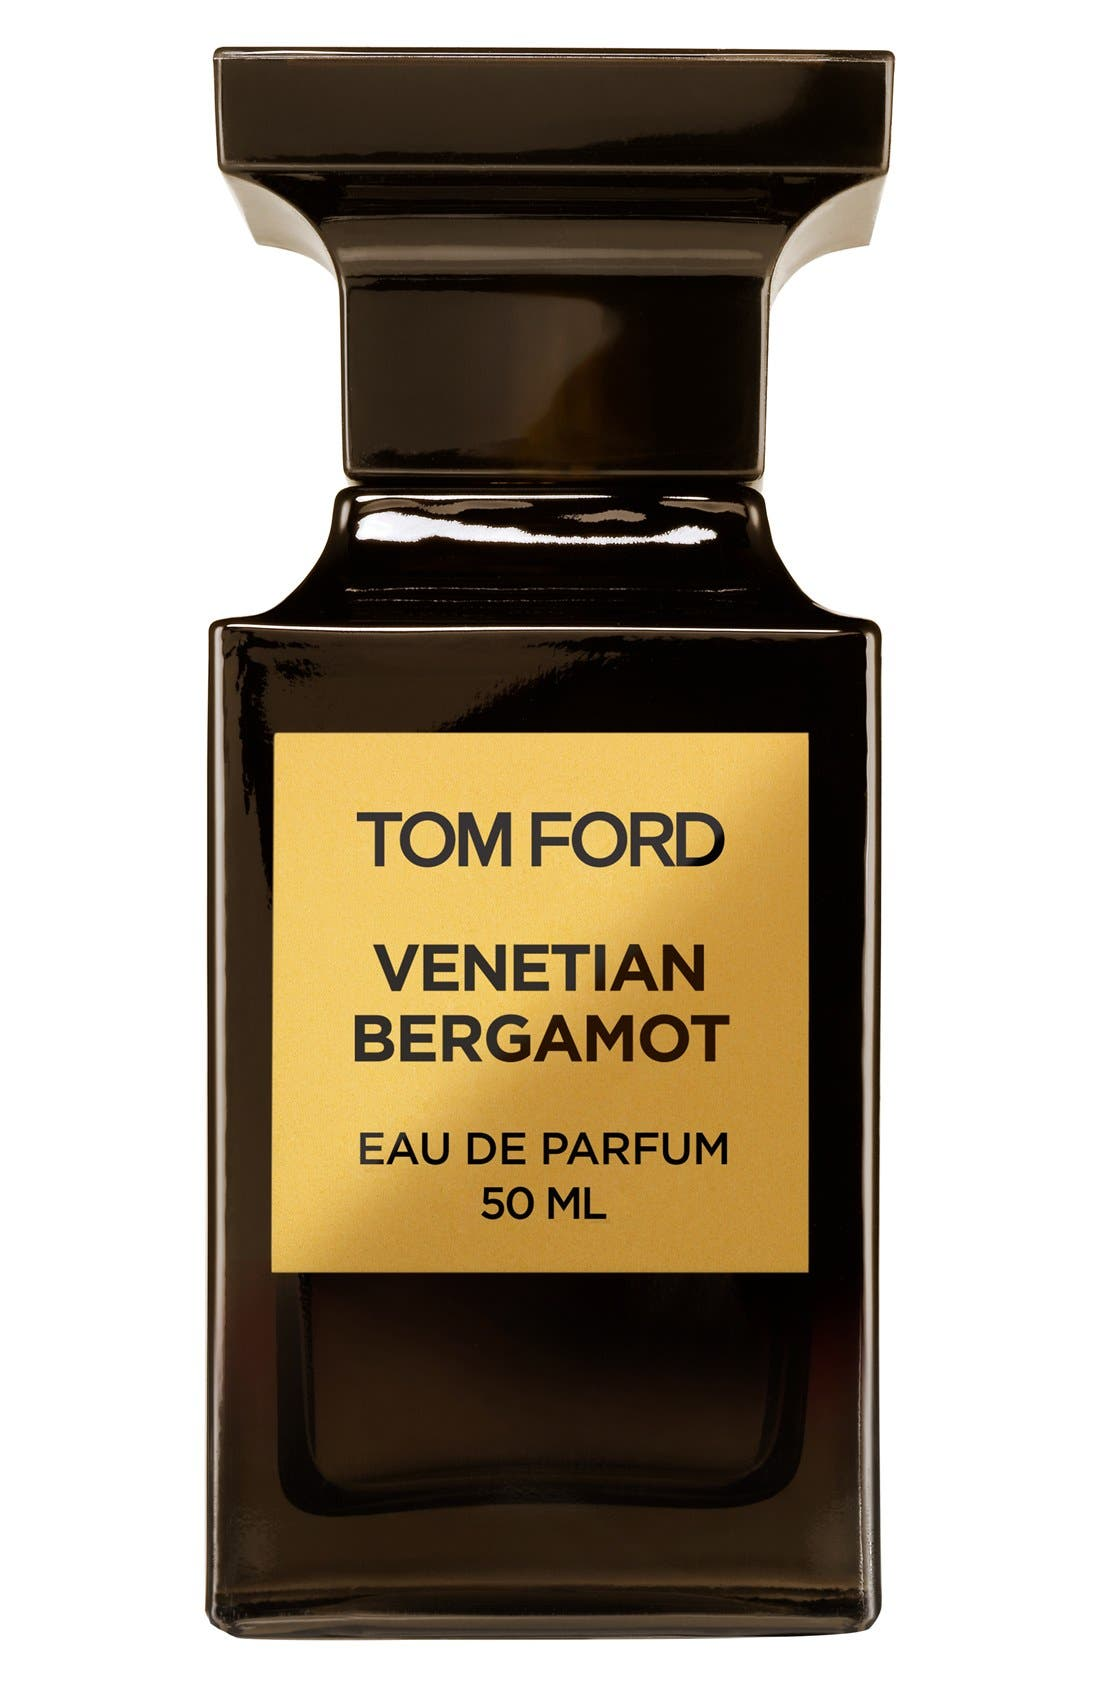 Tom Ford Private Blend Venetian Bergamot Eau de Parfum